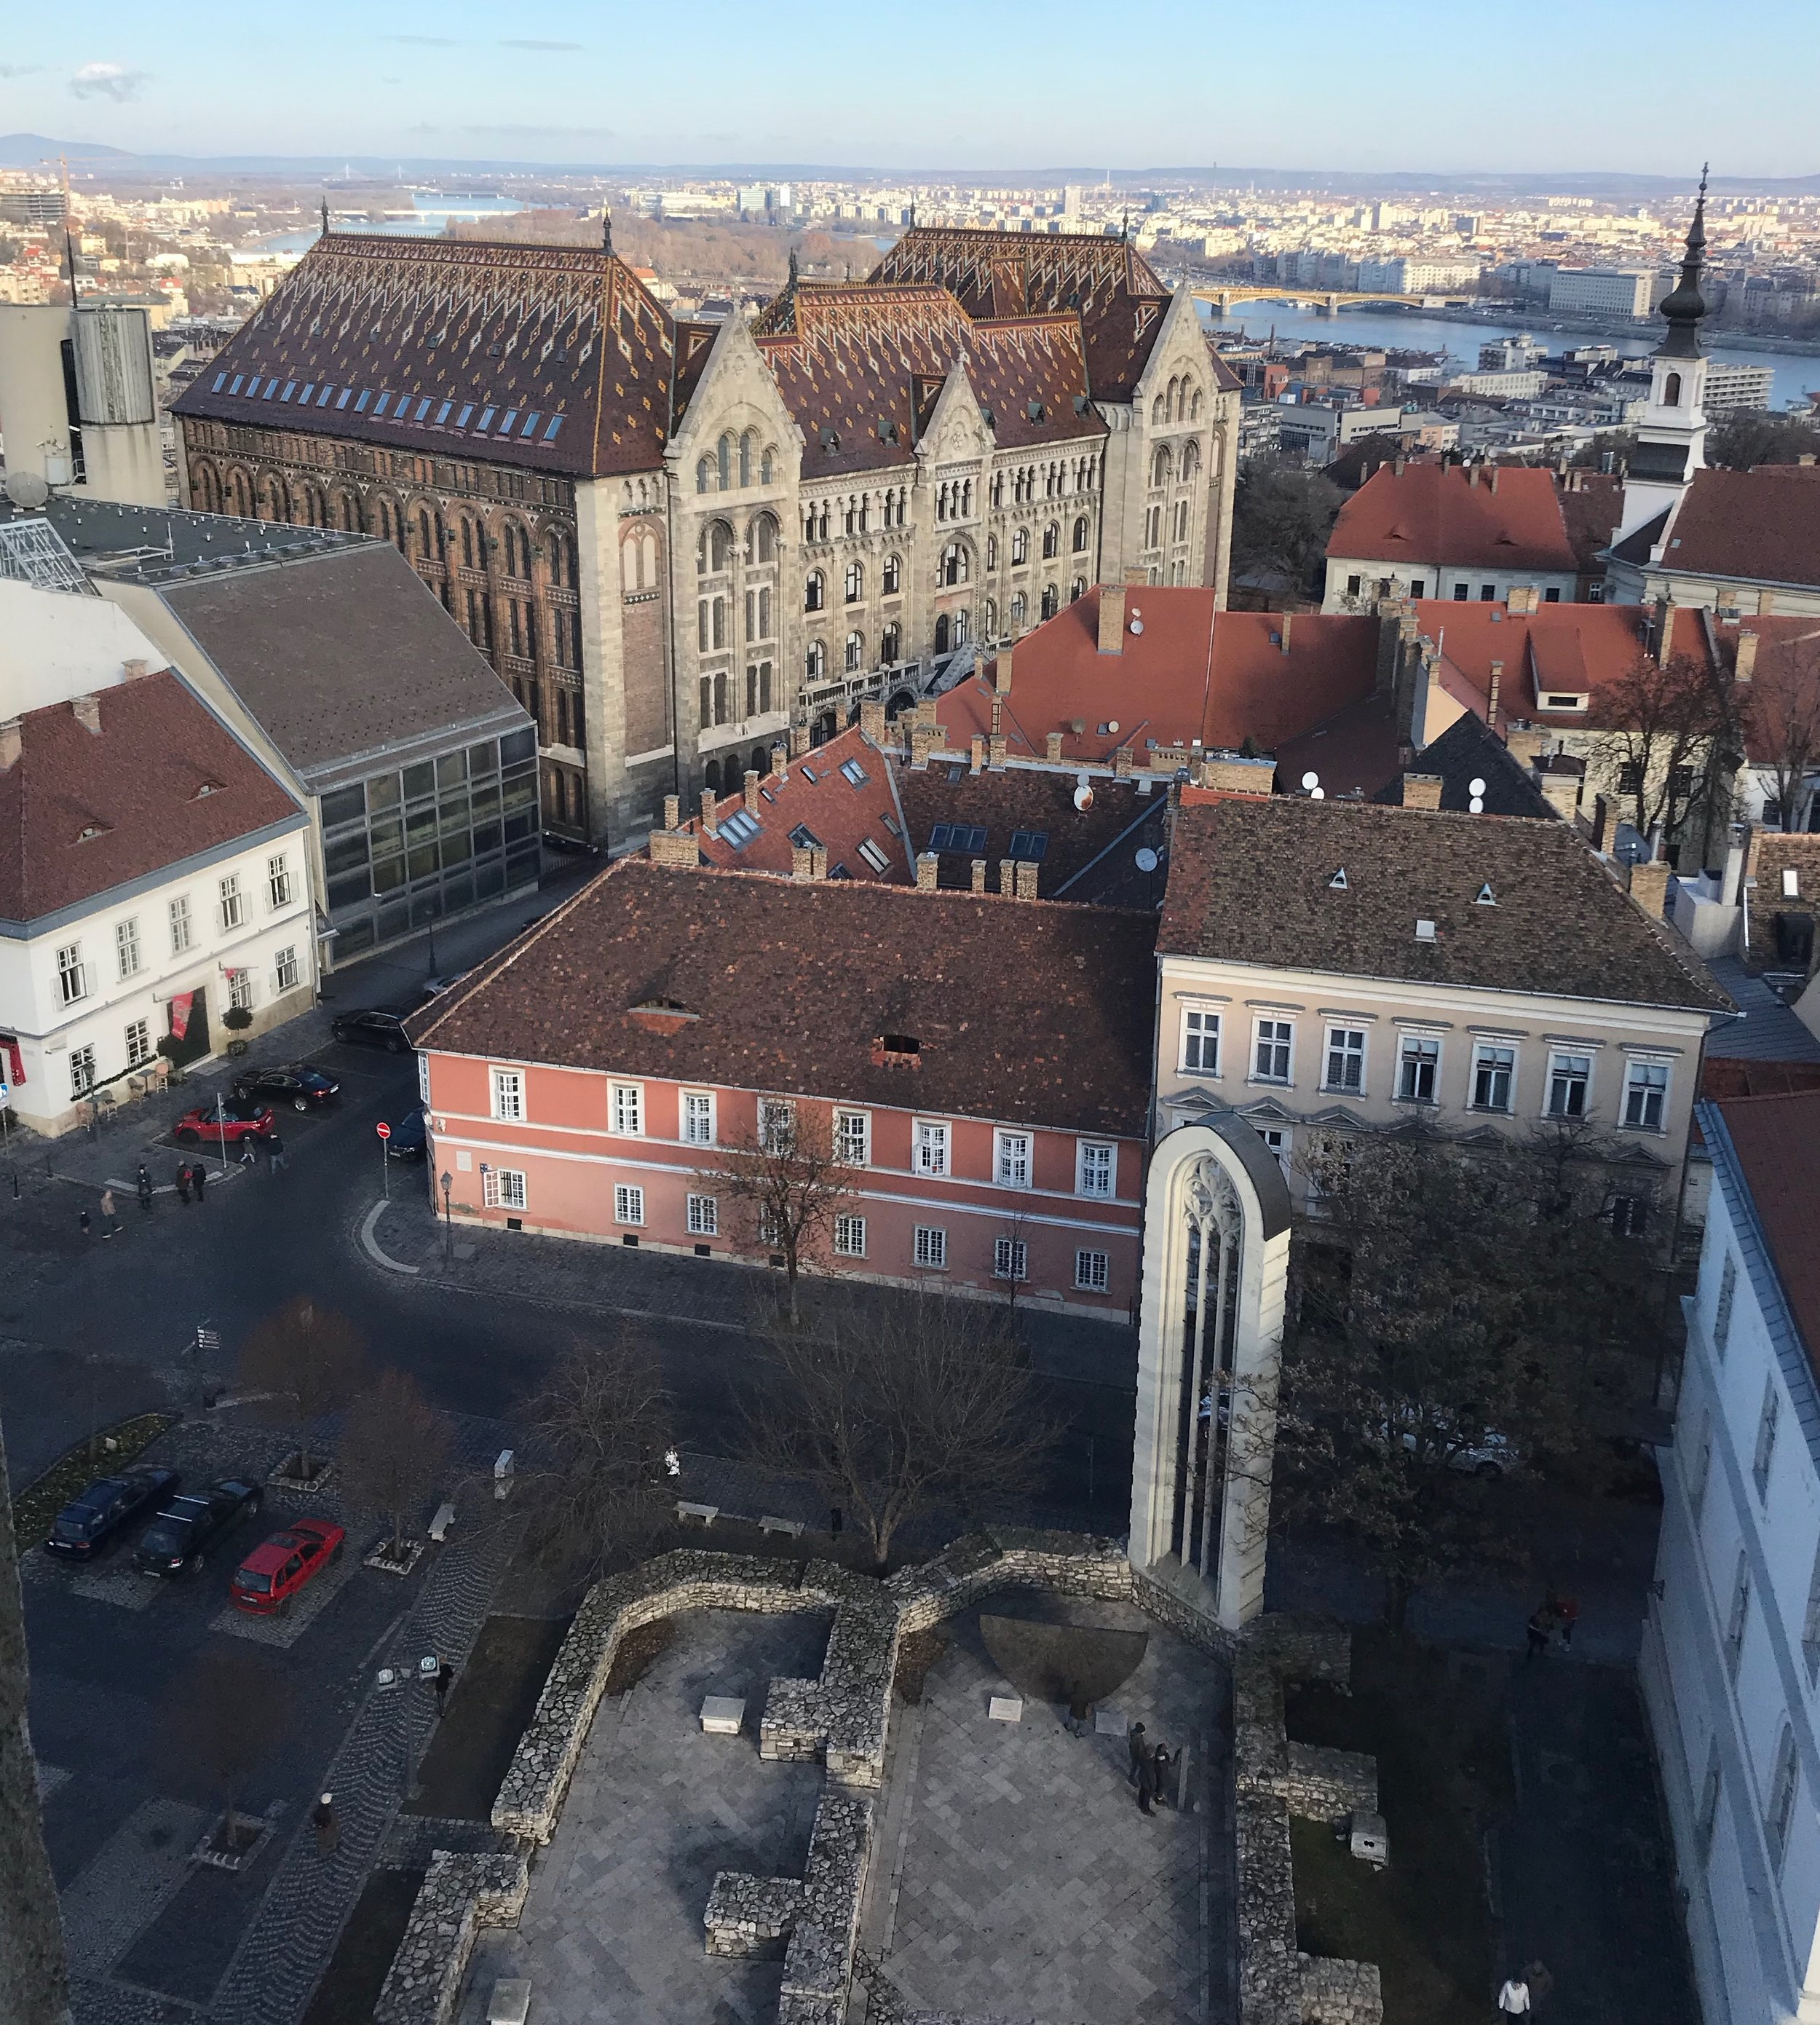 The view from the top of the Magdalena Tower